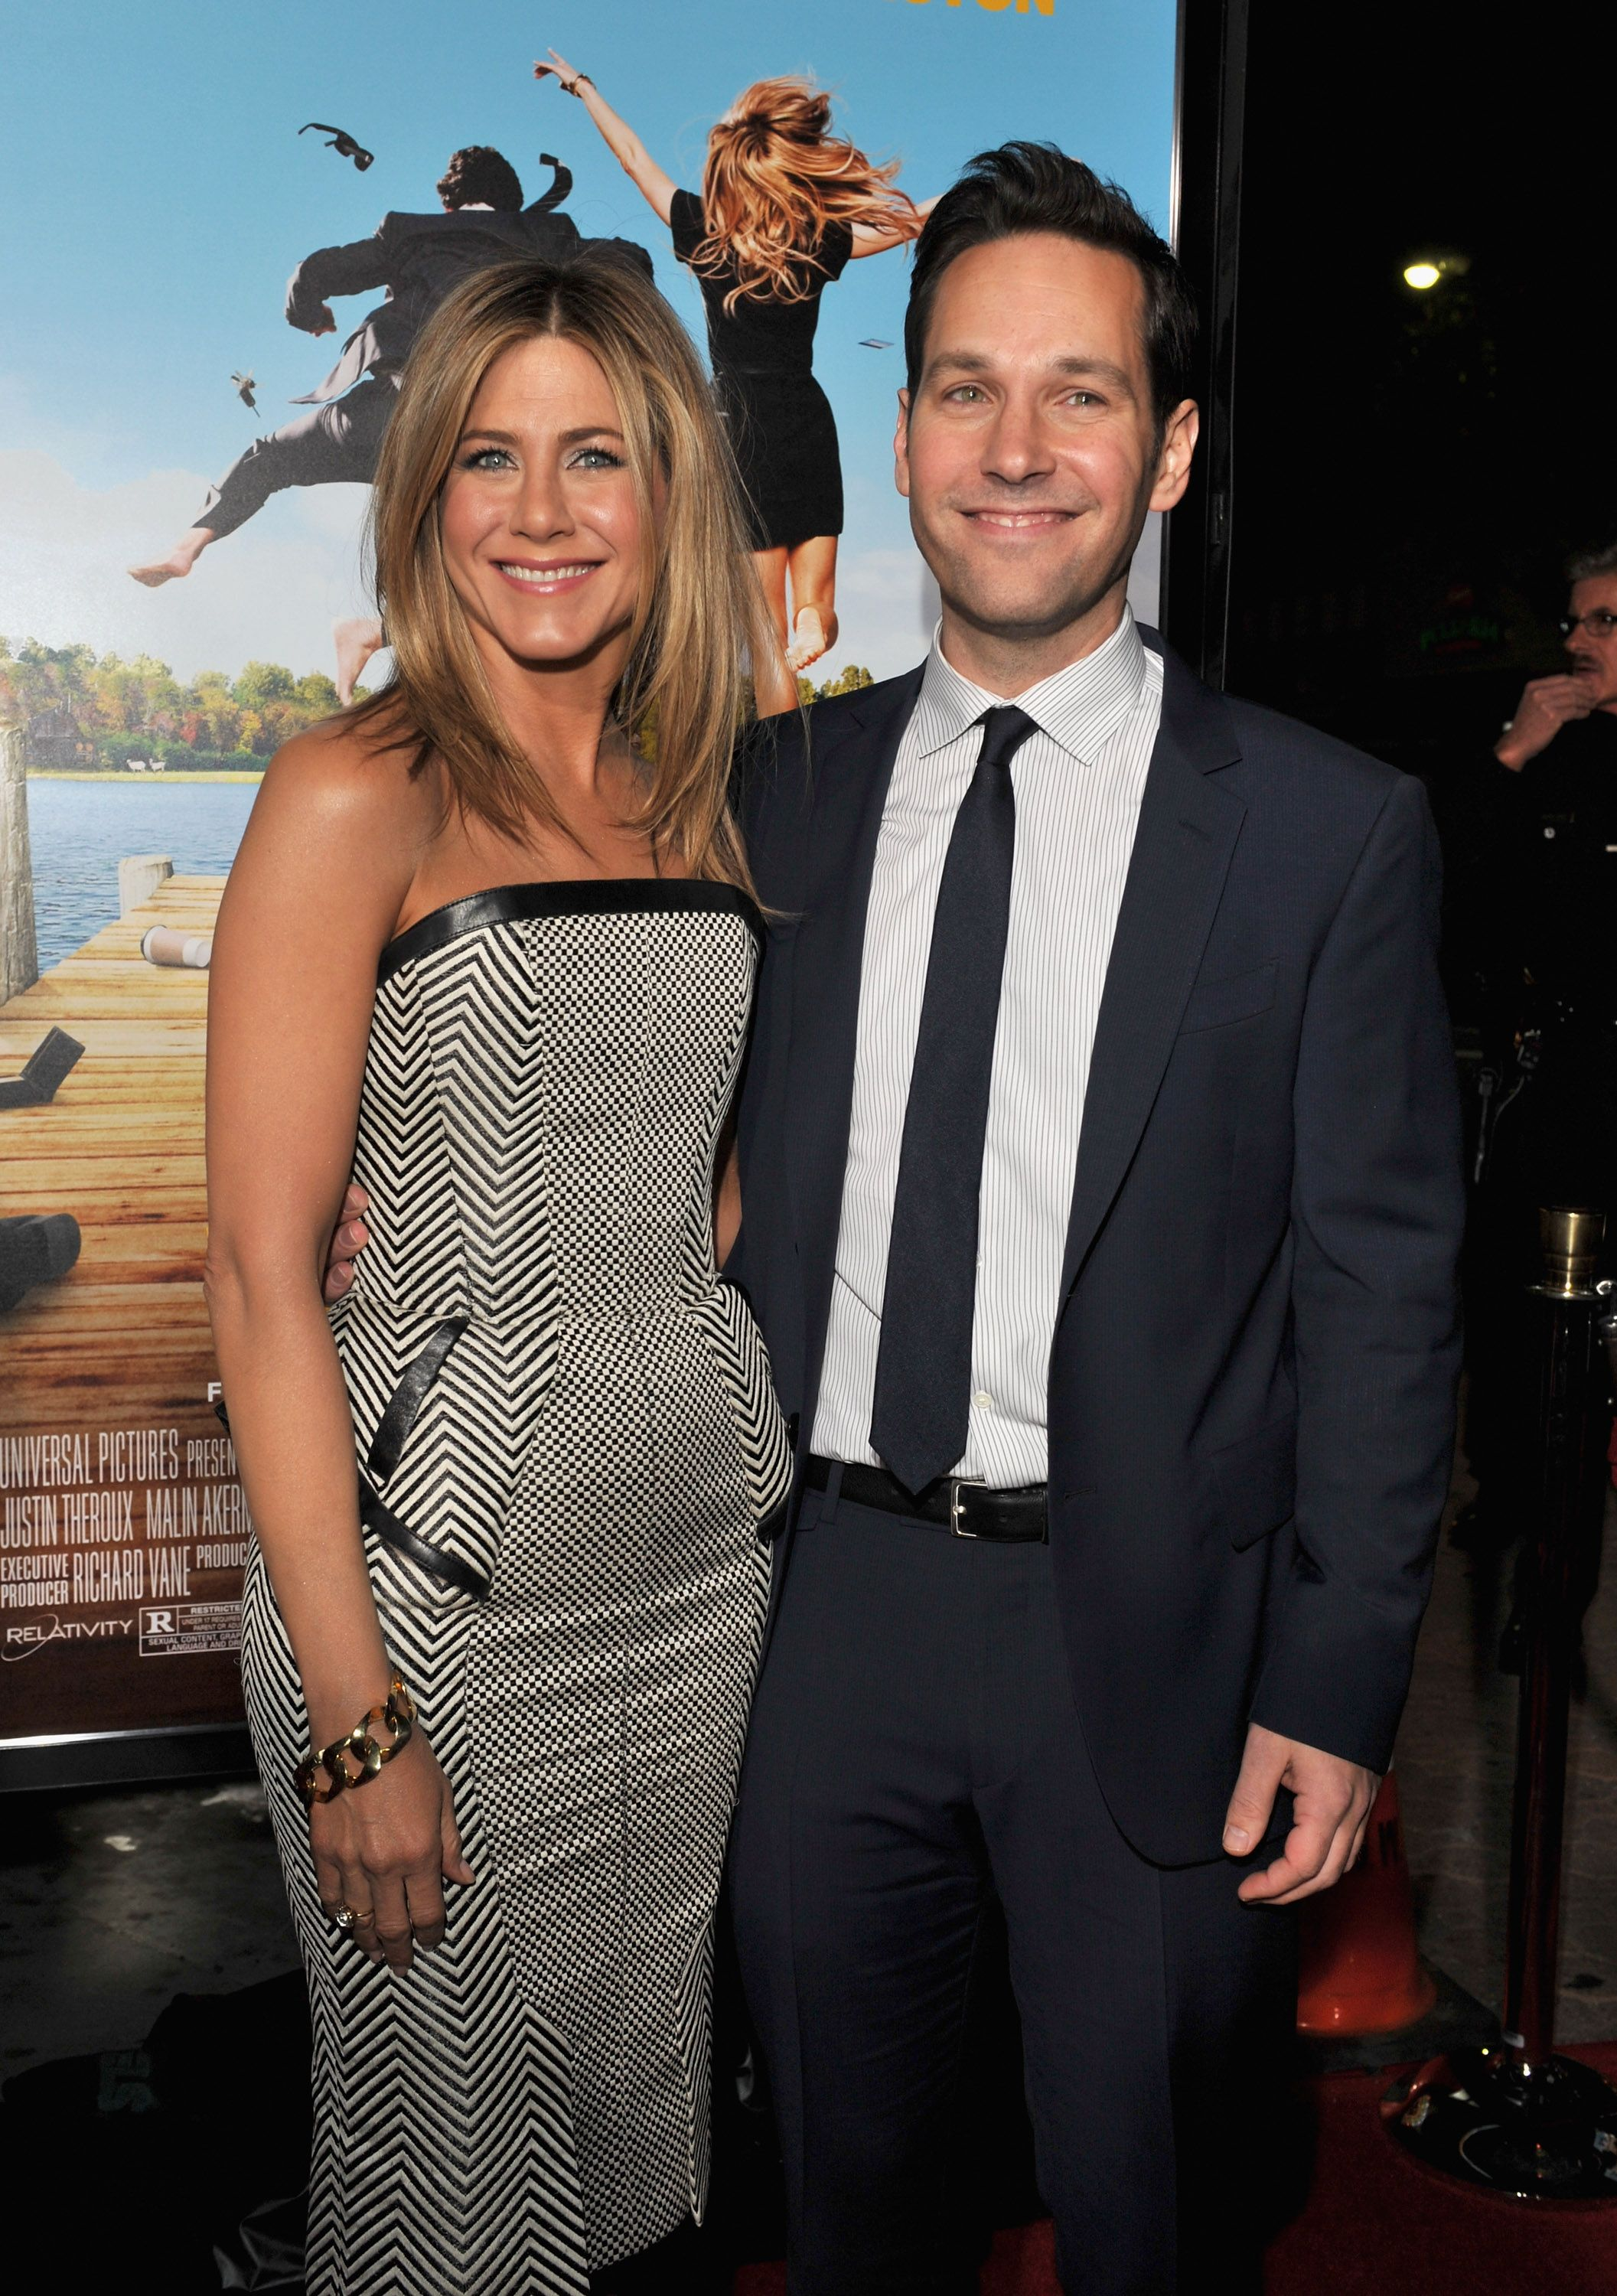 Paul Rudd Revealed an Awkward Moment With Jennifer Aniston After Filming the Last Episode of 'Friends'